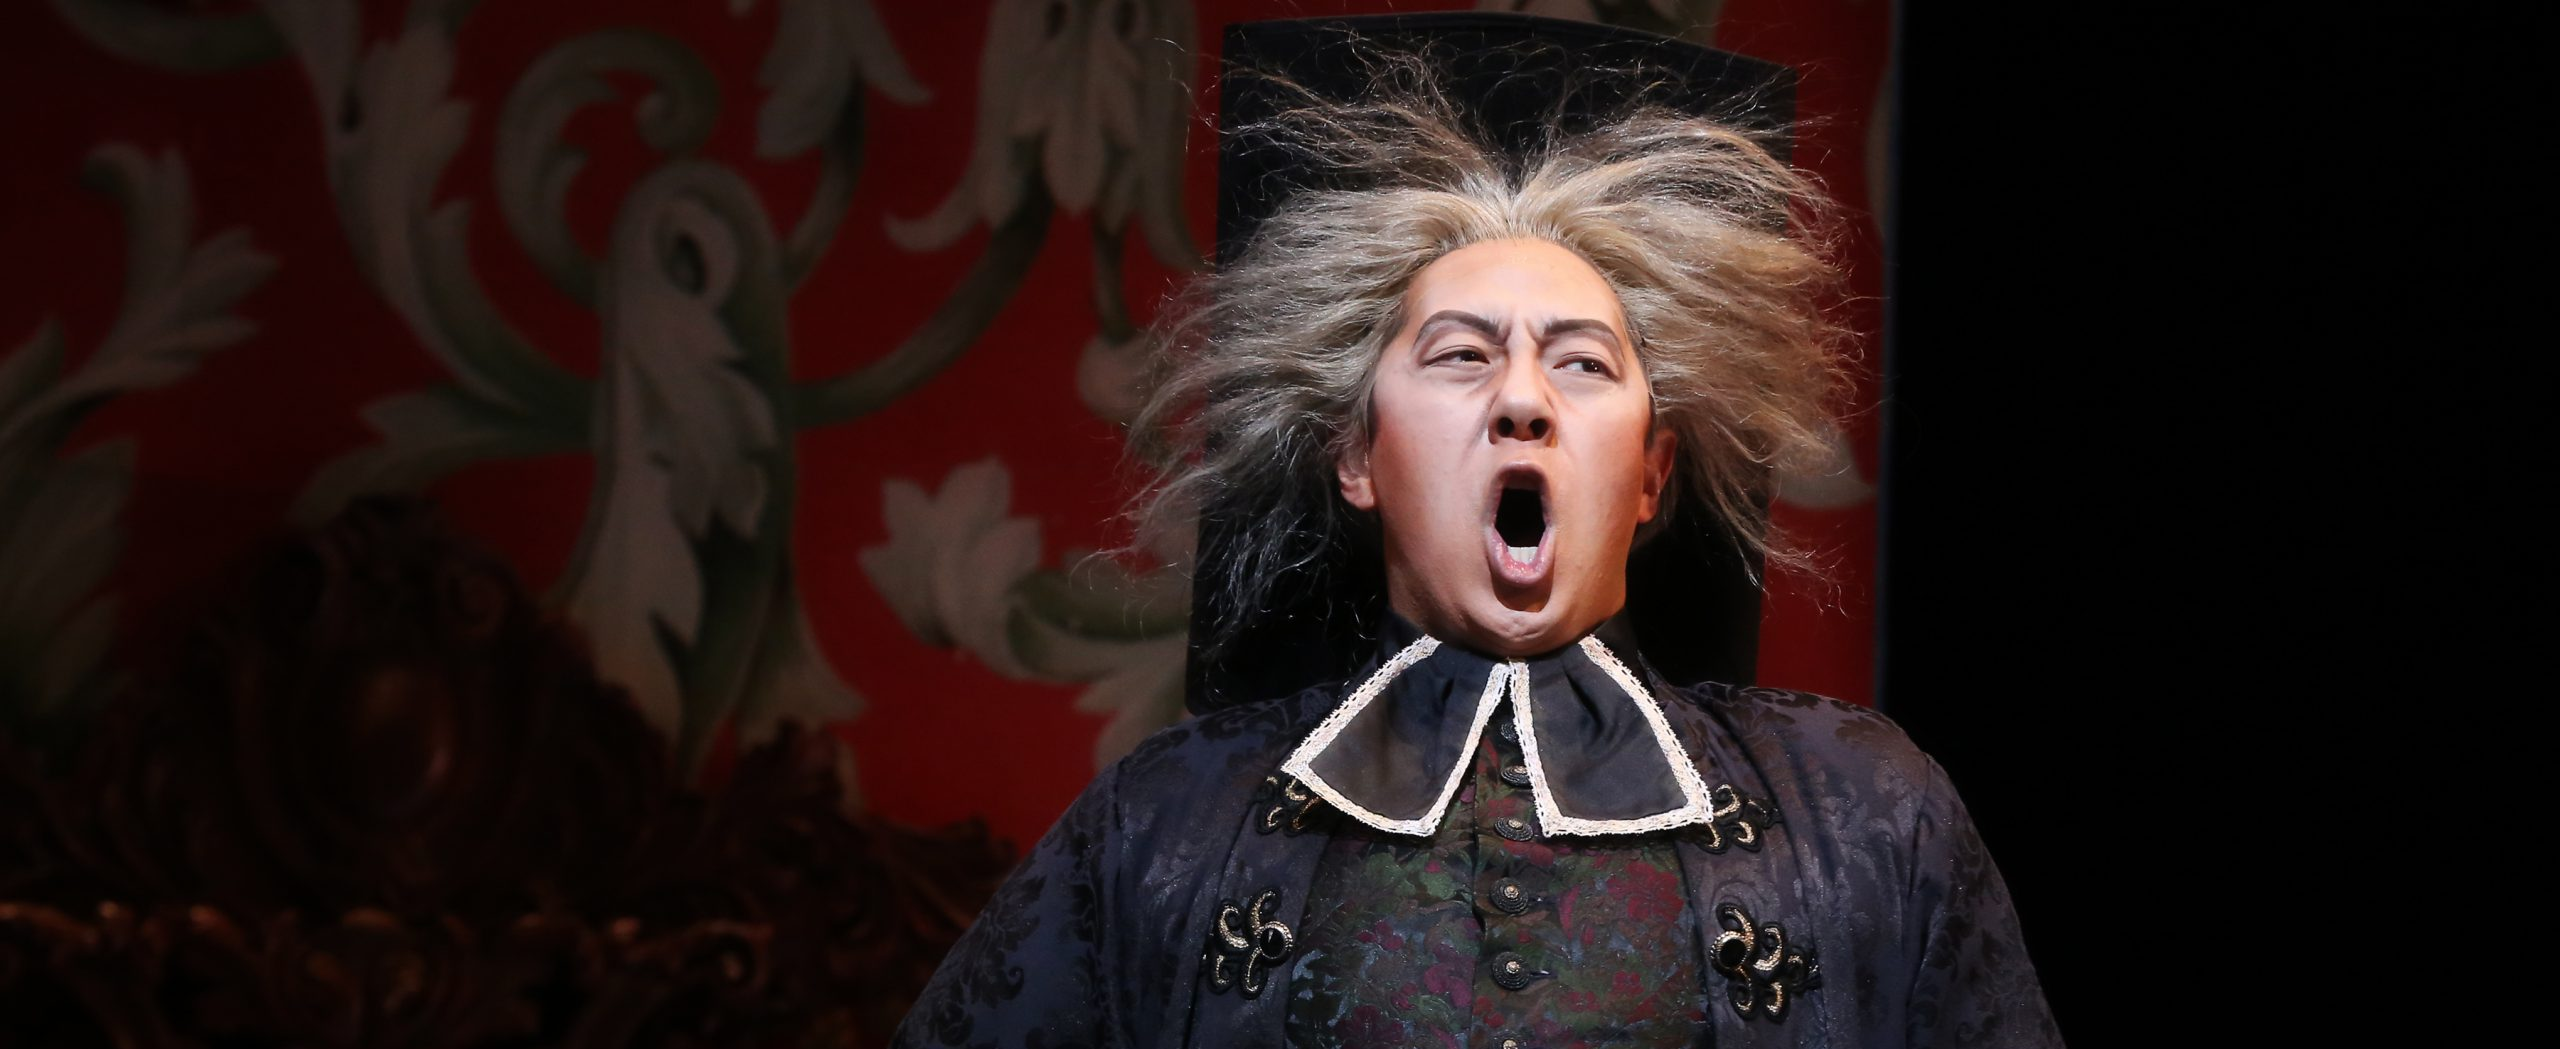 Singing man from The Barber of Seville